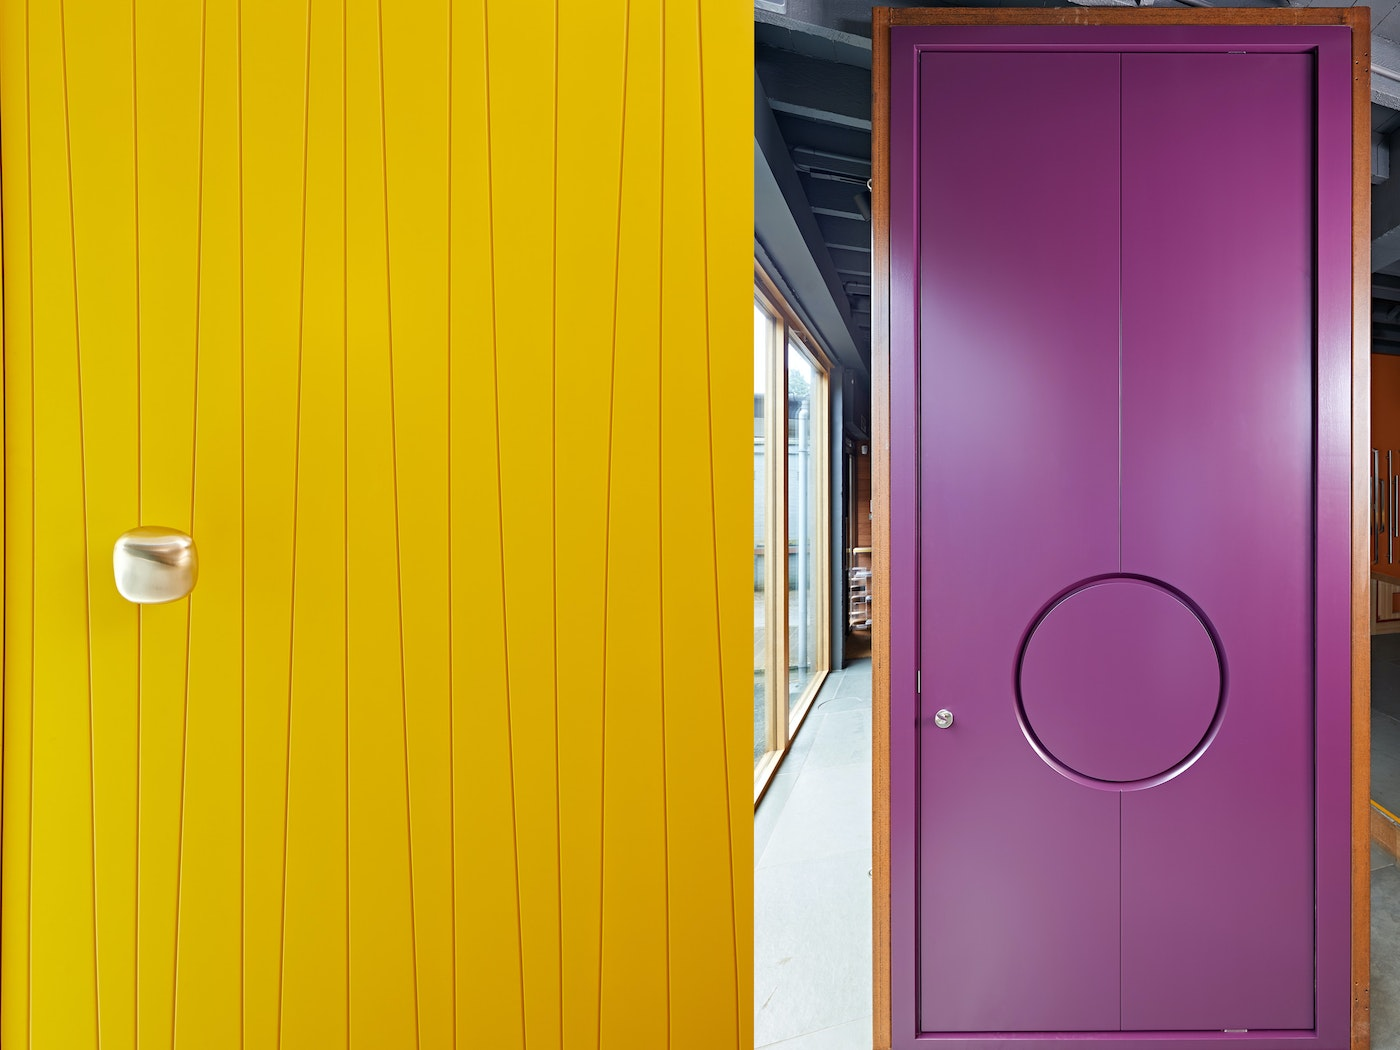 The reverse side of the barn door can be a completely different design